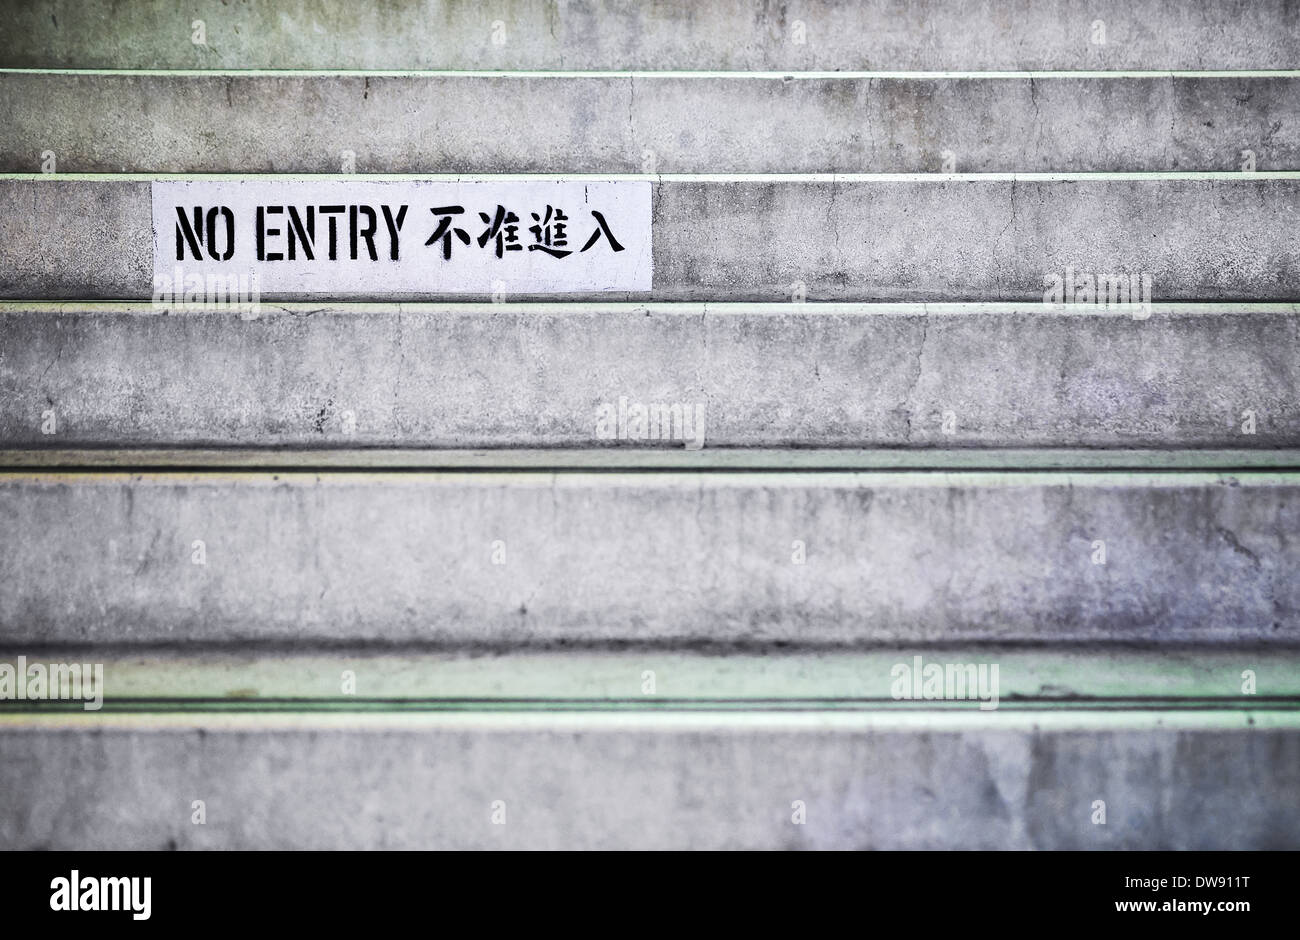 No Entry sign on the steps at the Wan Chai Star Ferry pier, Hong Kong. - Stock Image